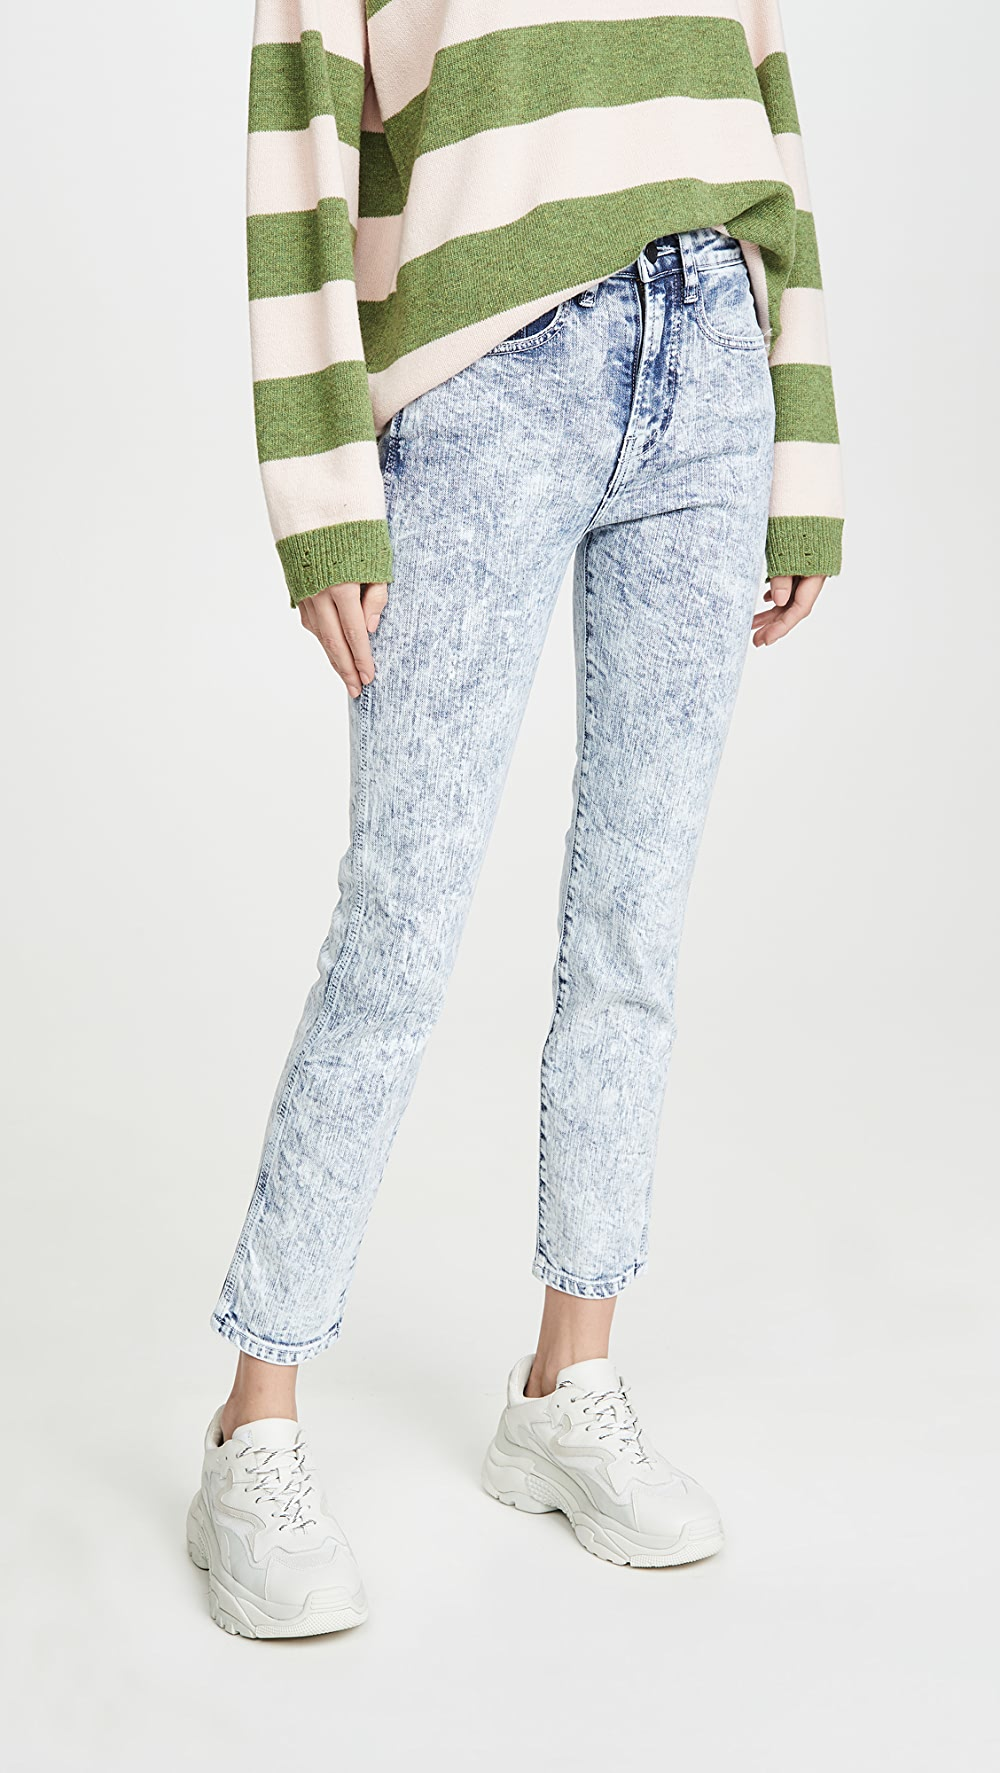 Sweet-Tempered Jordache - High Rise Slim Jeans Low Price